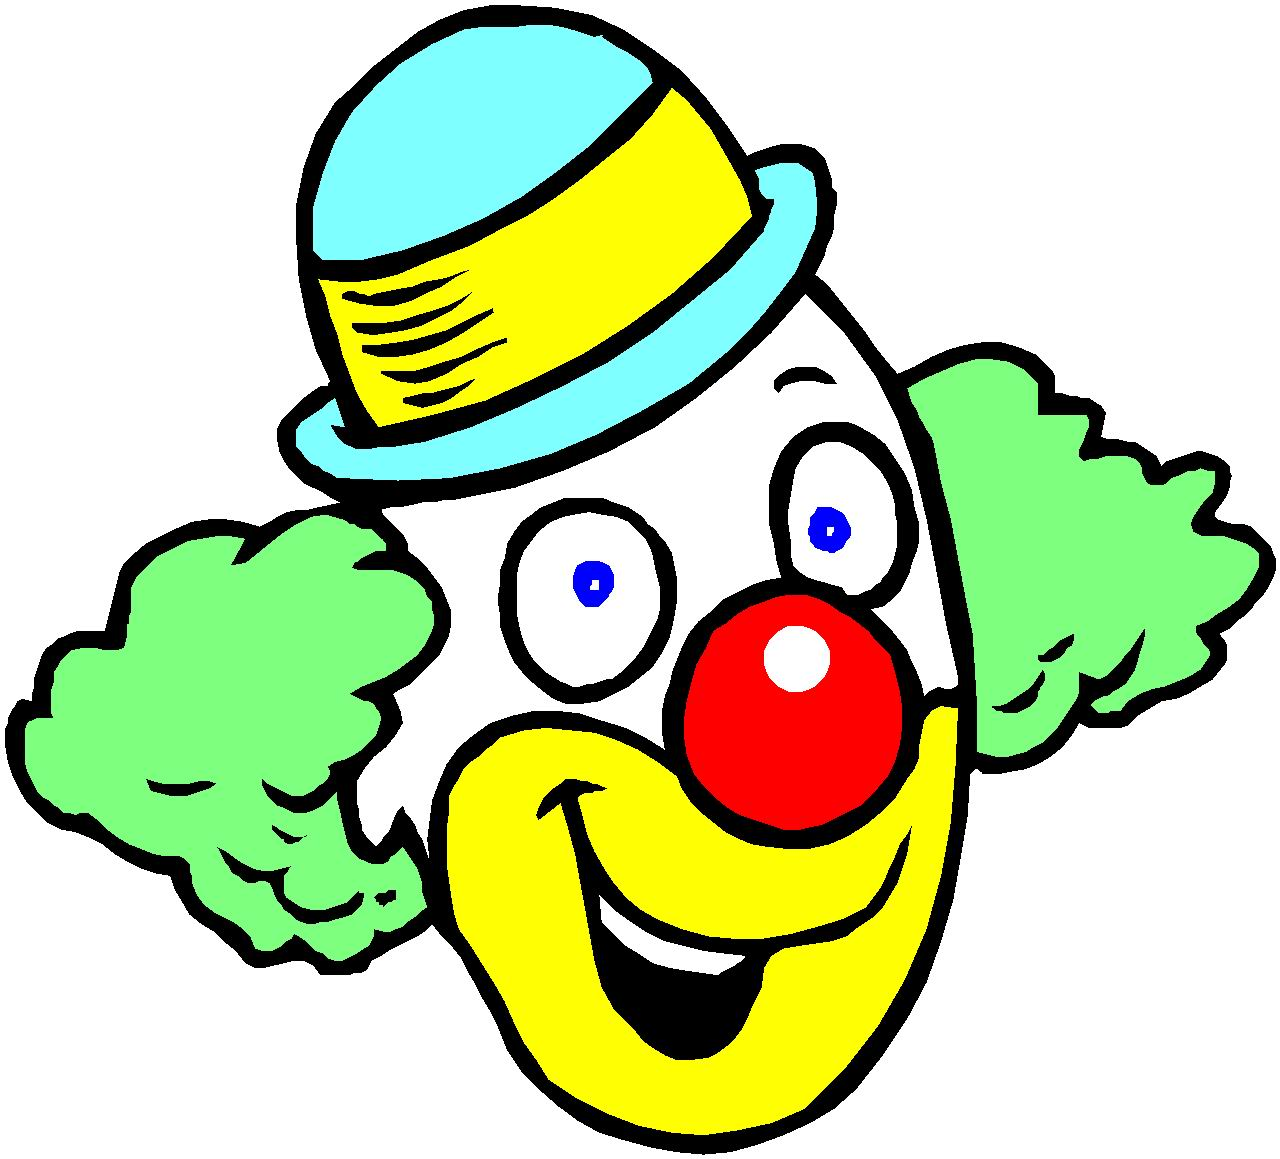 clowns clip art picgifs com rh picgifs com clown clipart free clown clipart free